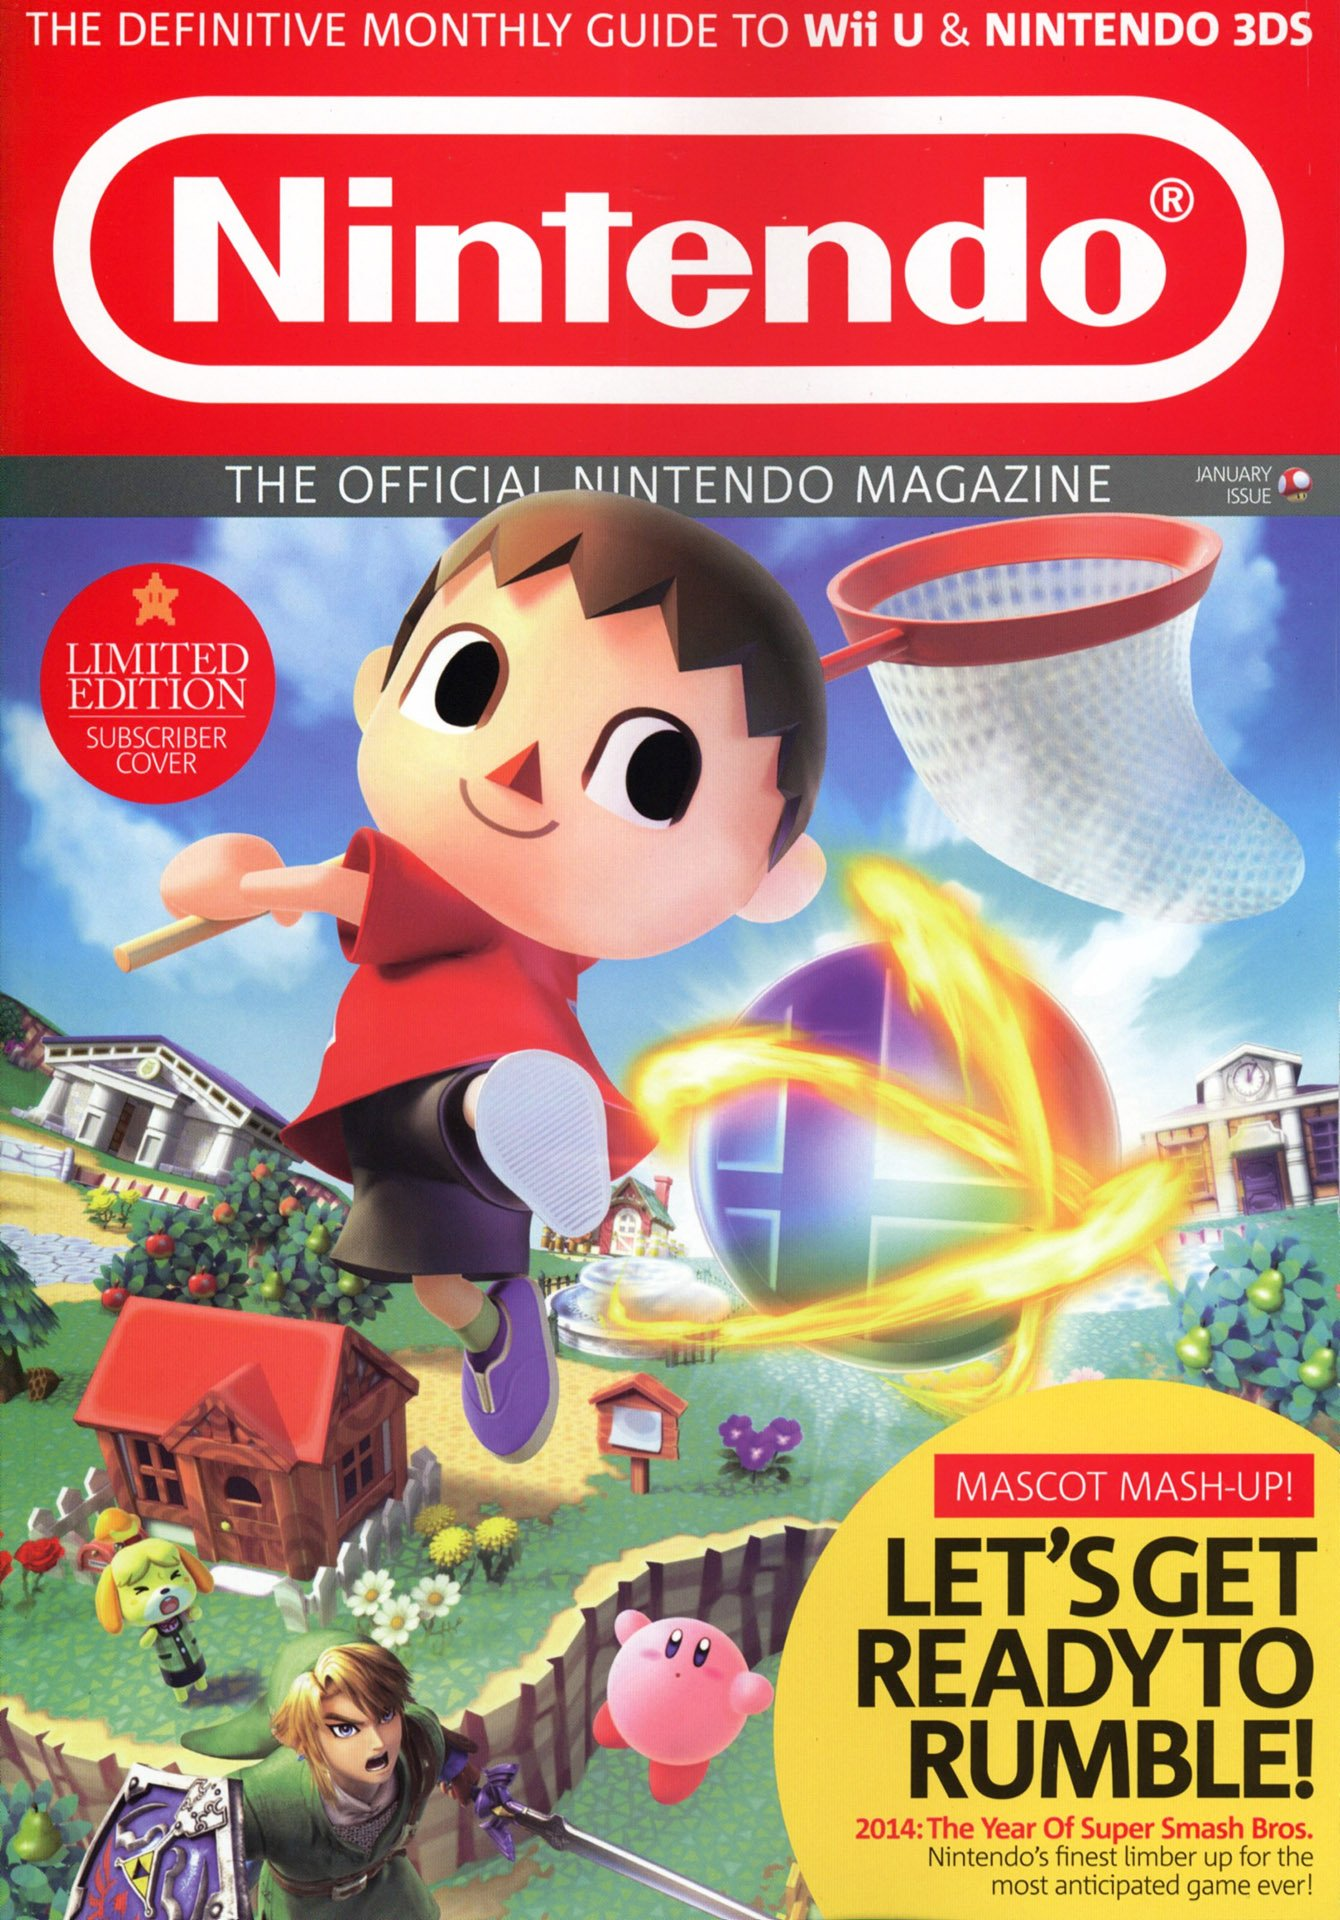 Official Nintendo Magazine 103 (January 2014) (subscriber cover)